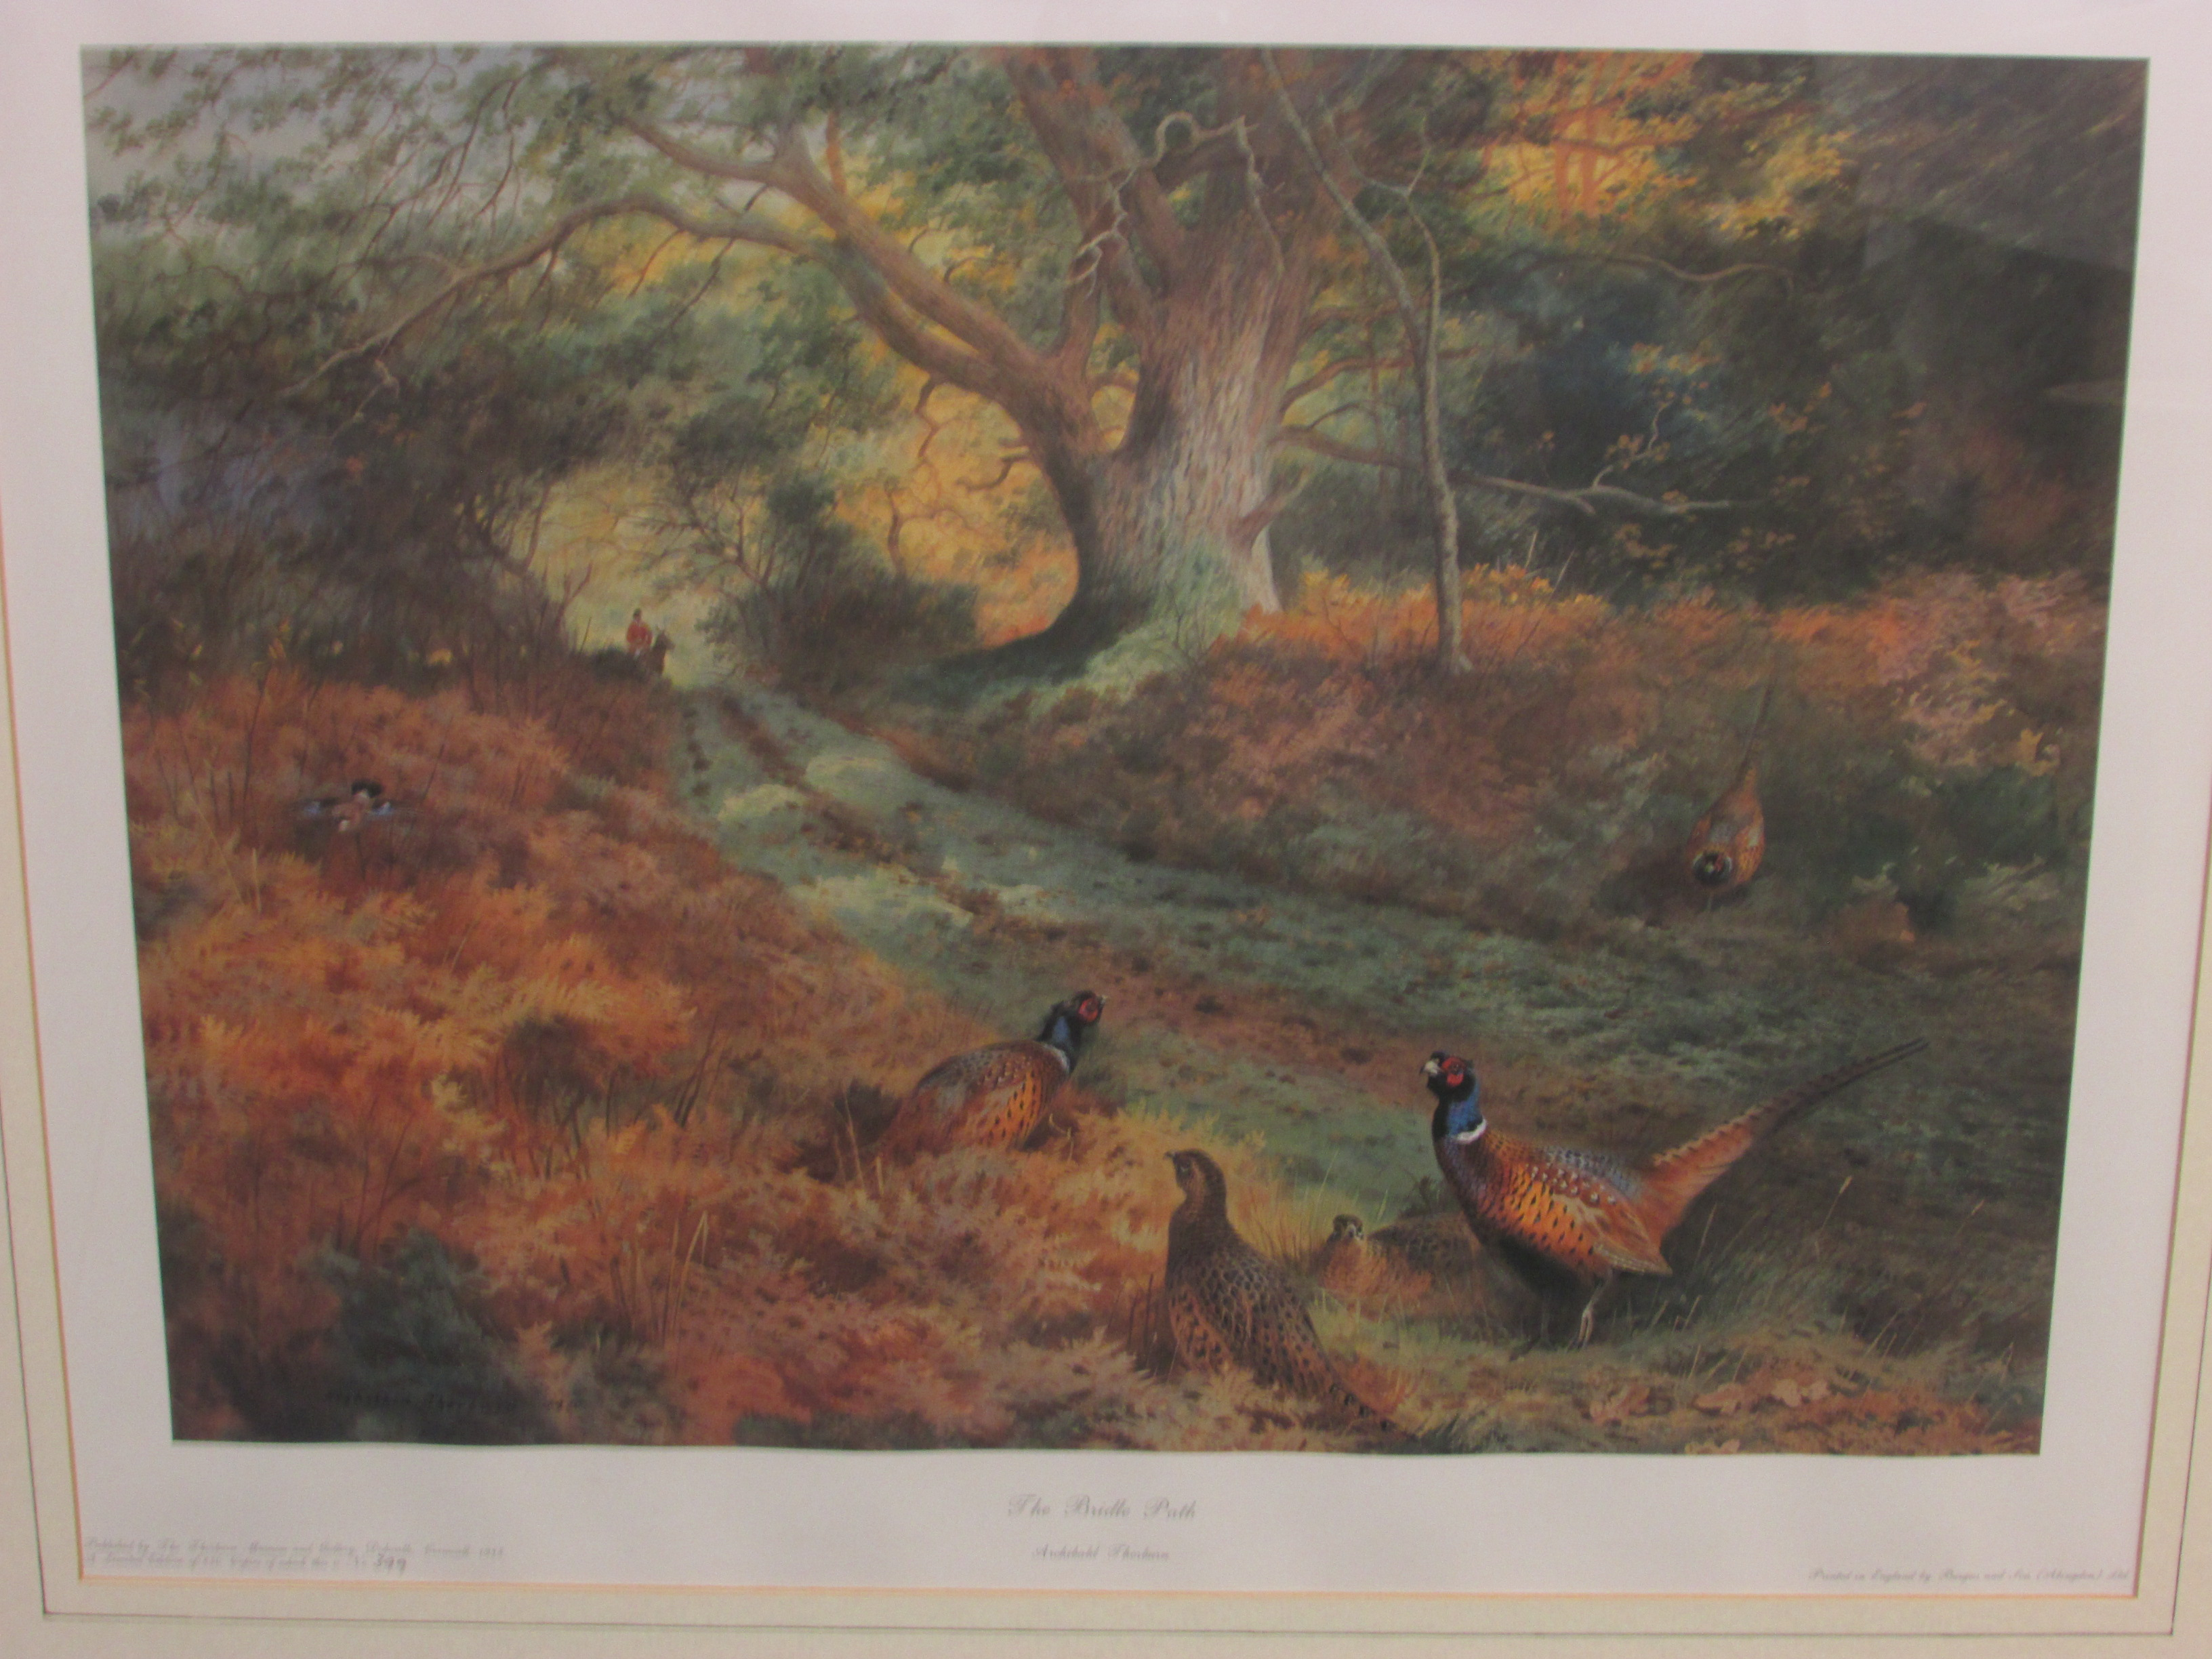 Lot 225 - After Archibald Thorburn (1860-1935) - 'The Bridle Path', limited edition colour print 399 / 850,